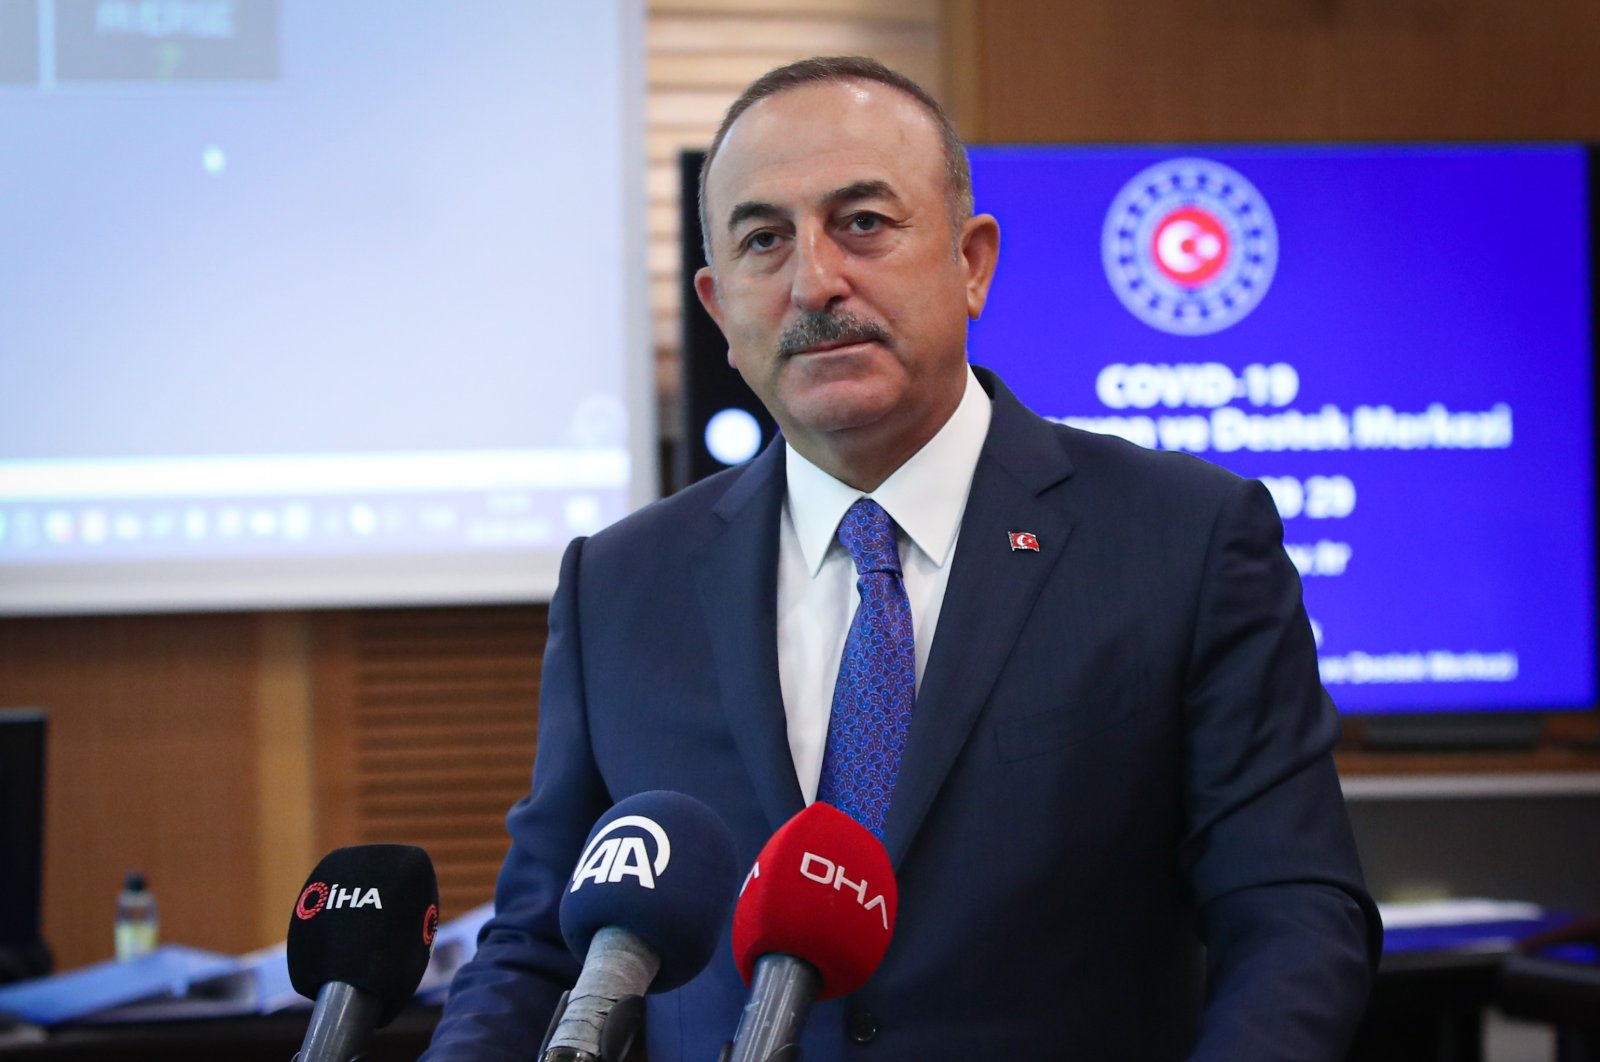 Foreign Minister Çavuşoğlu during a press conference in Ankara, May 12, 2020. (AA Photo)